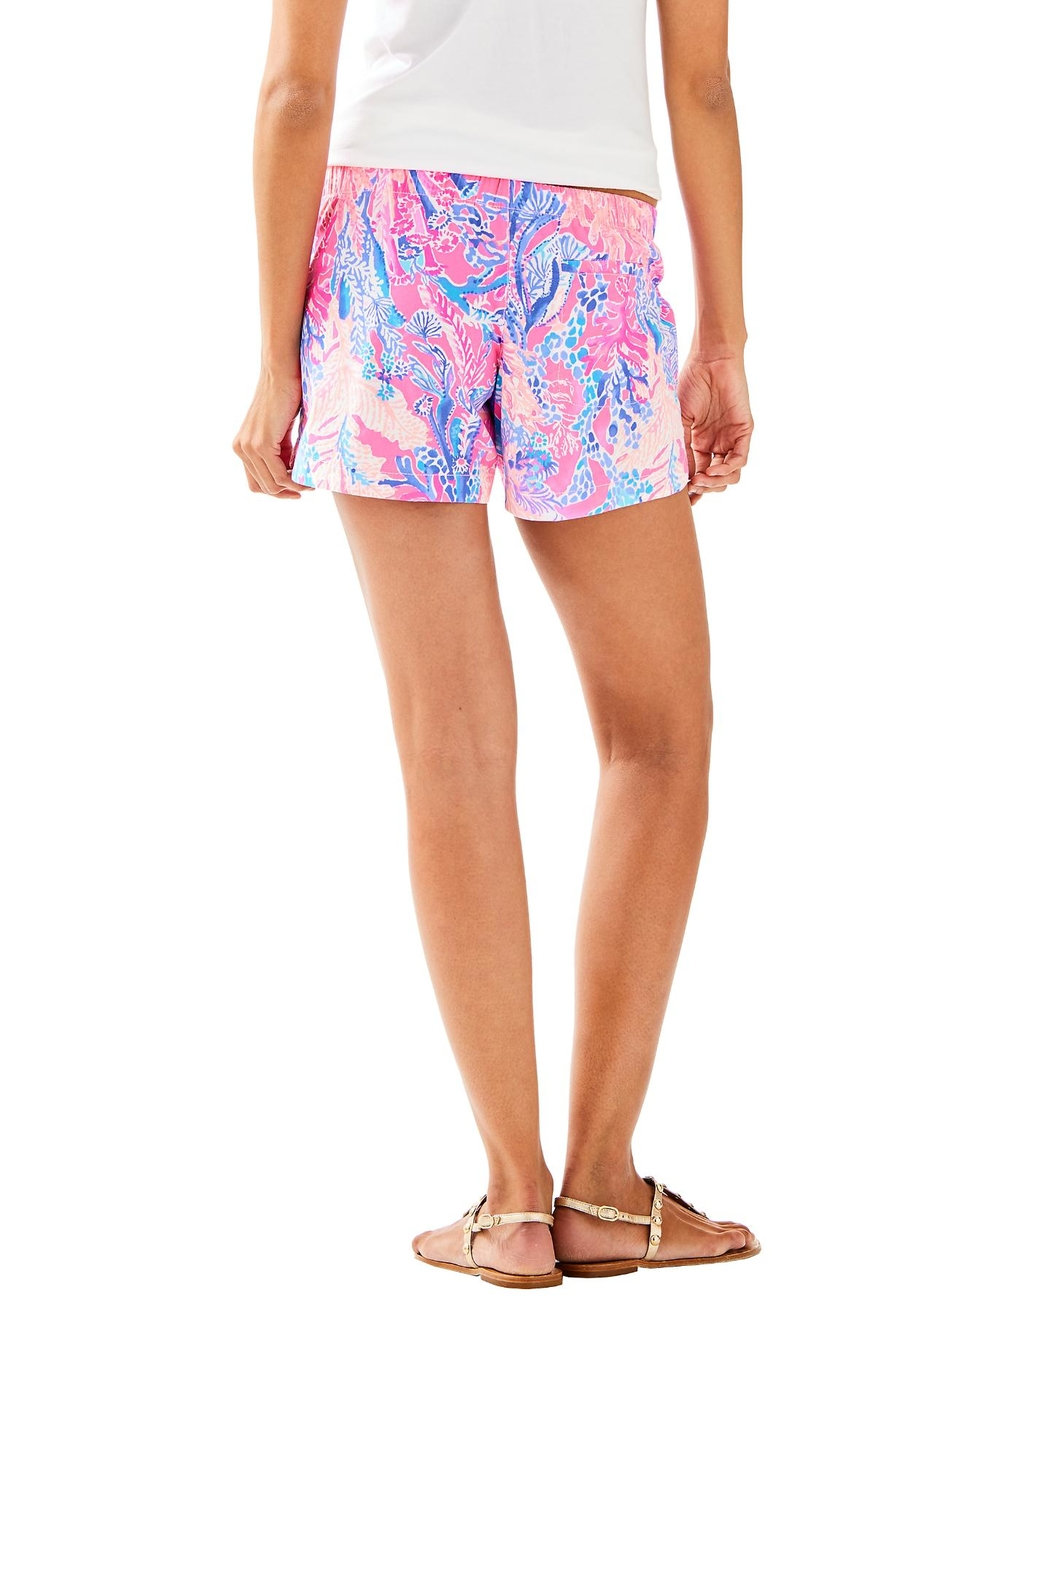 Lilly Pulitzer Ocean View Boardshort - Front Full Image